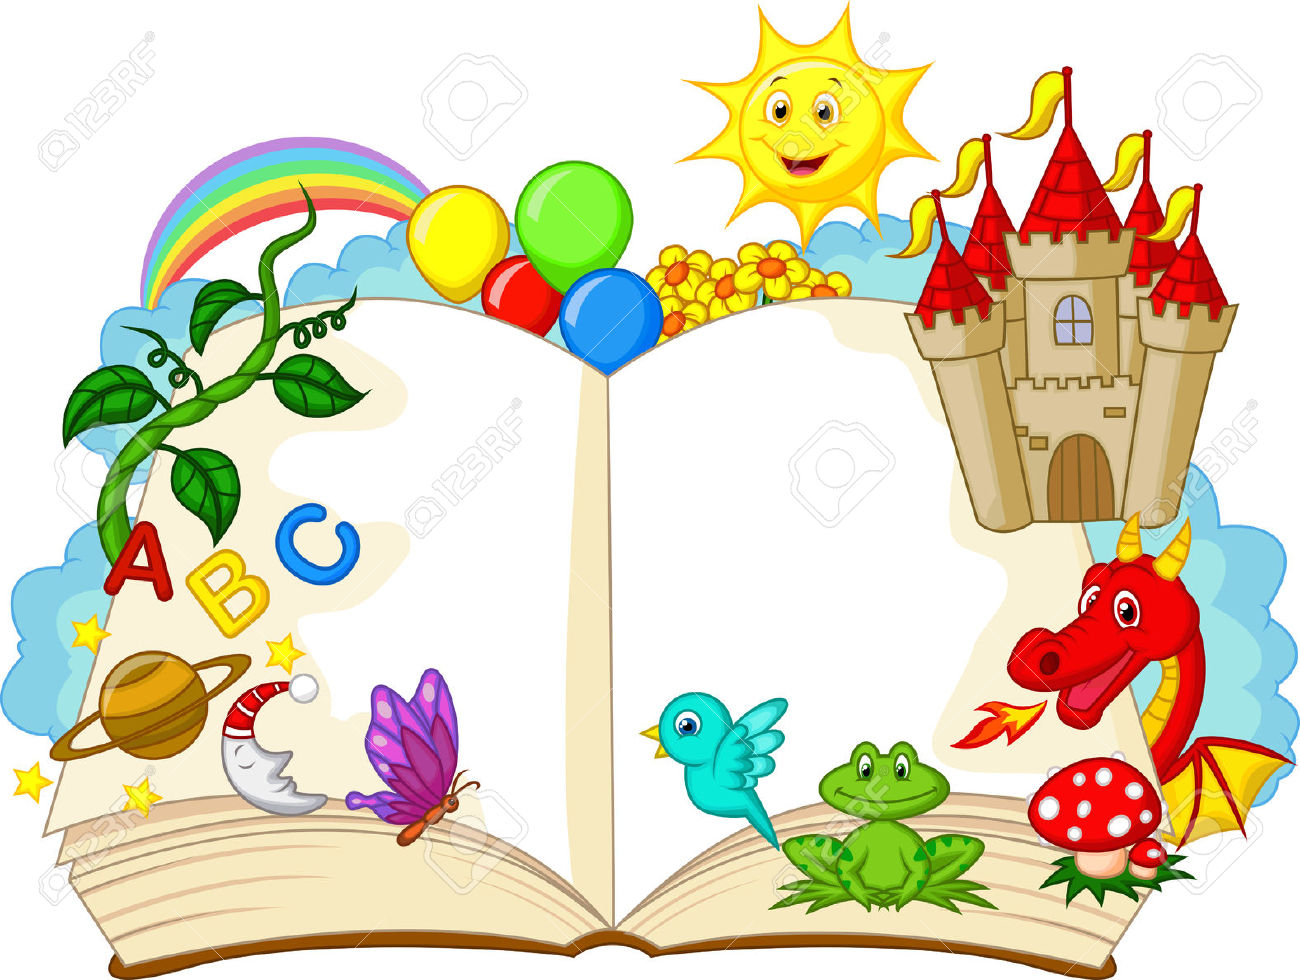 1300x980 Fantasy Book Cartoon Royalty Free Cliparts, Vectors, And Stock